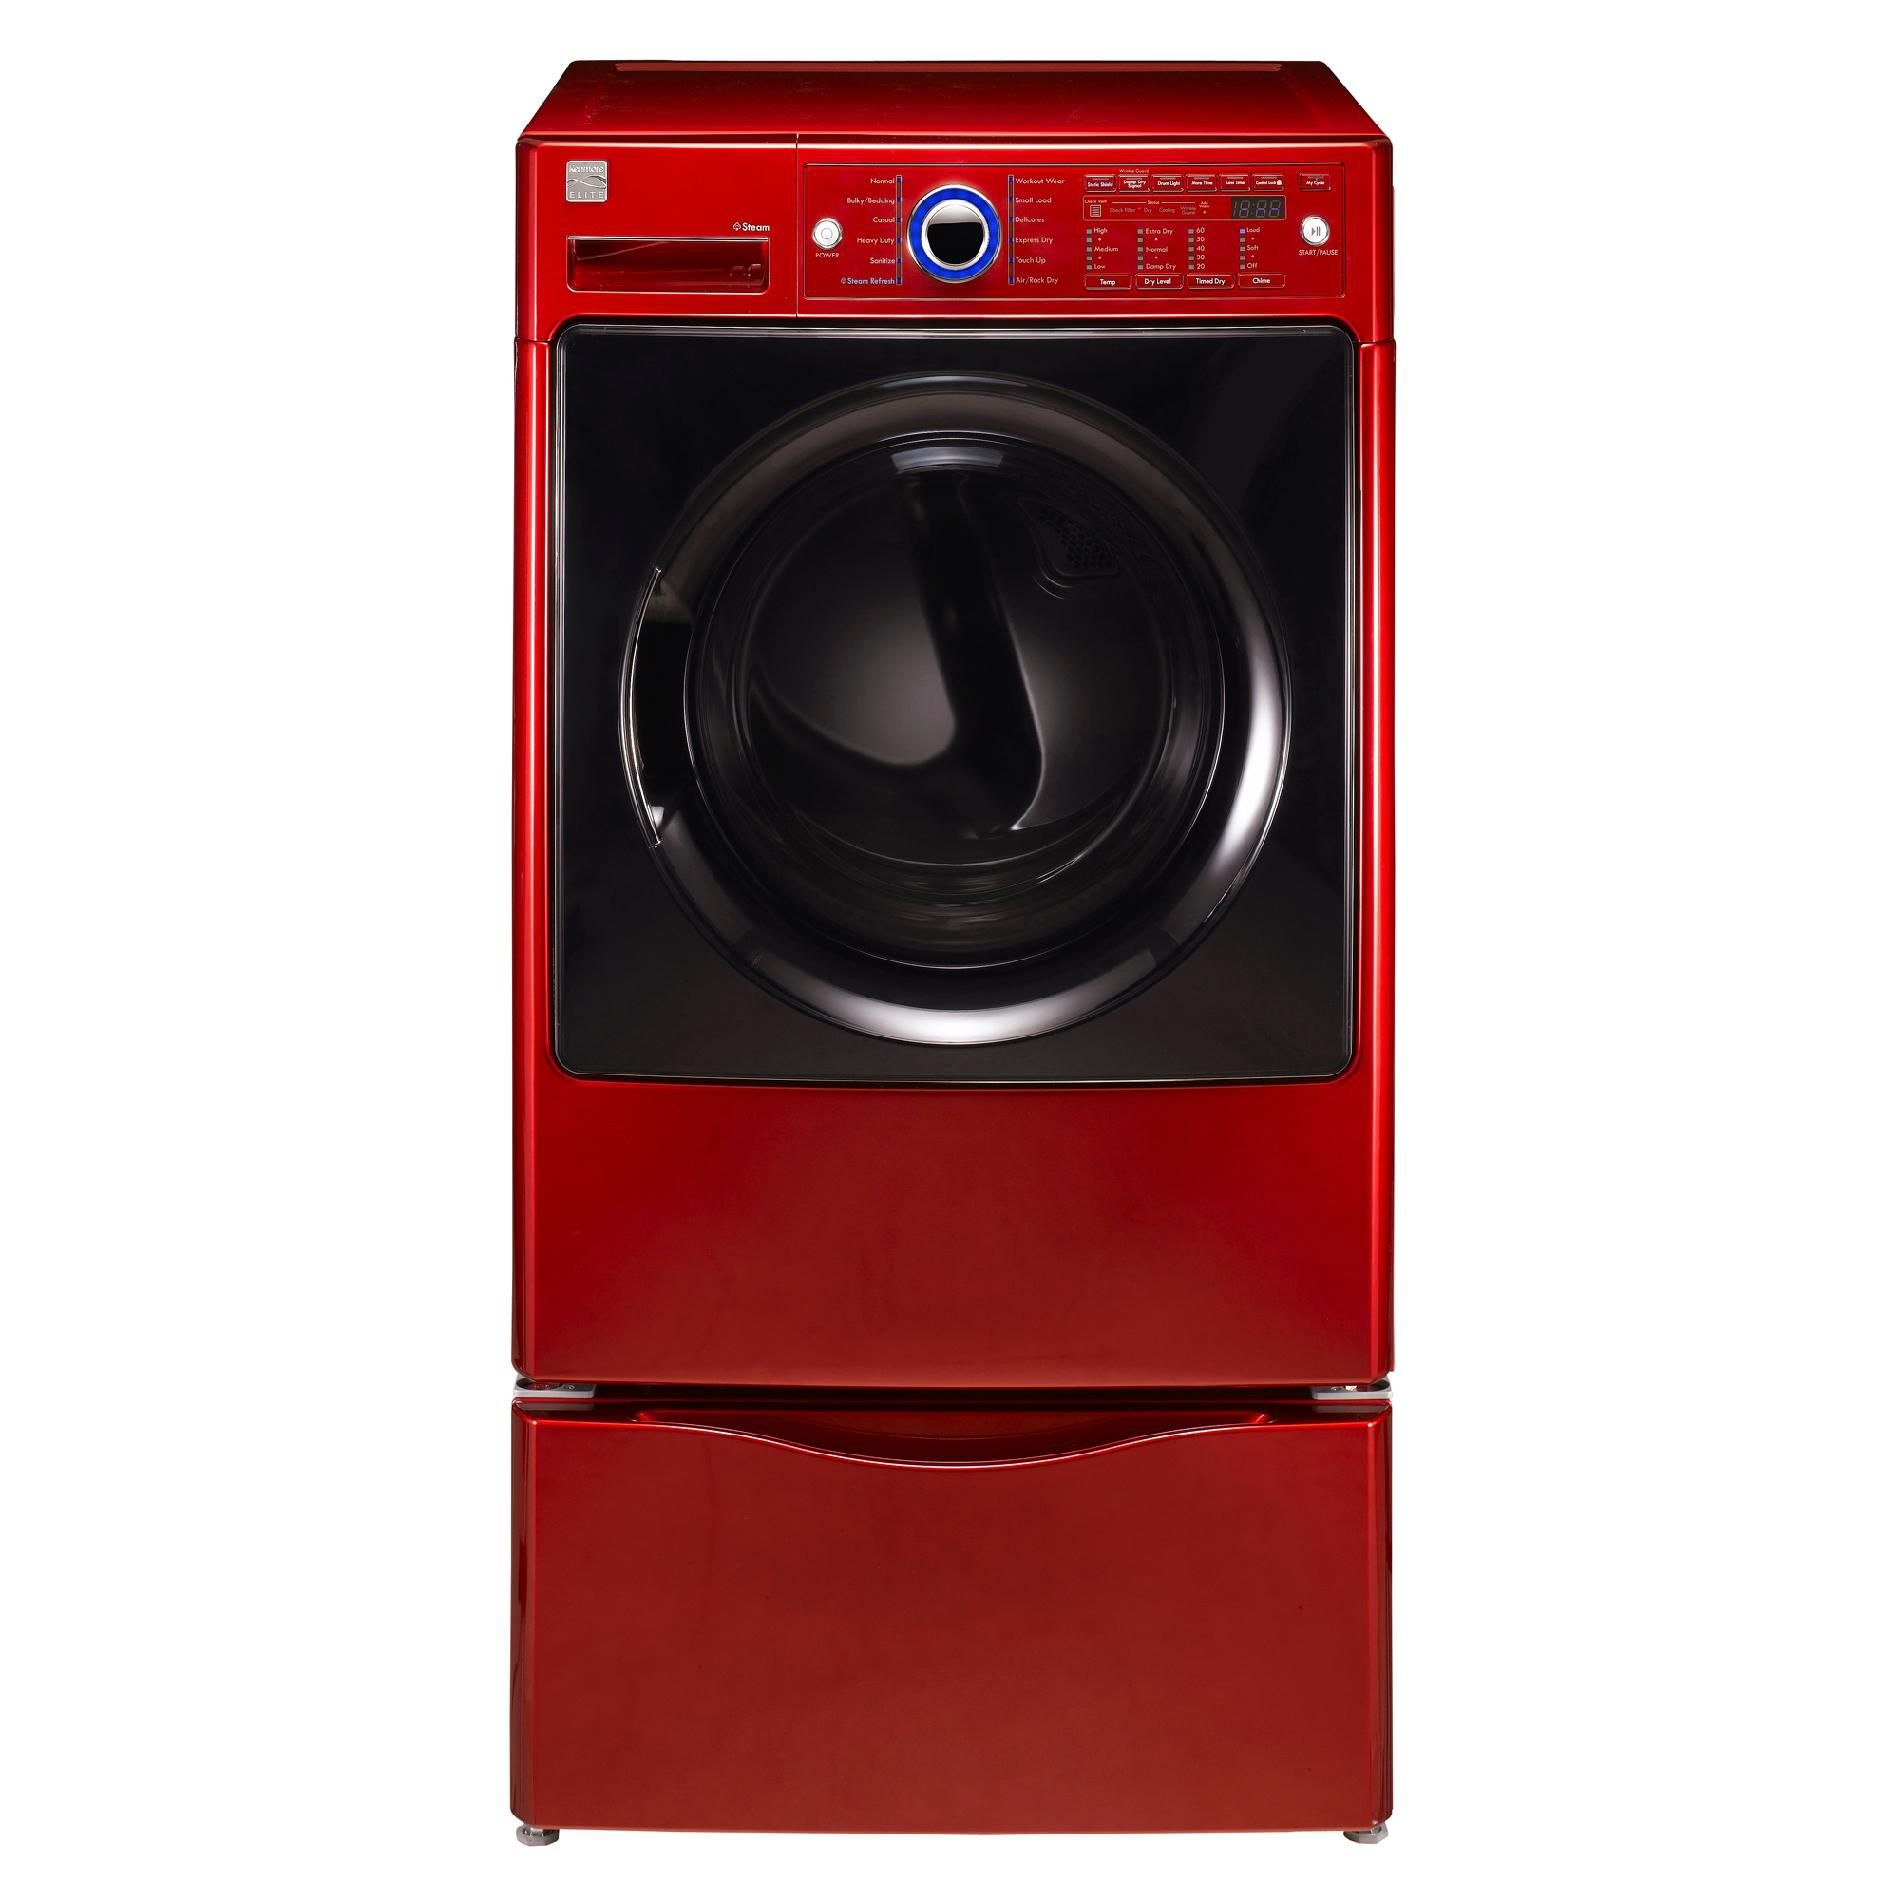 Kenmore Elite 7.4 cu. ft. Electric Steam Dryer - Red